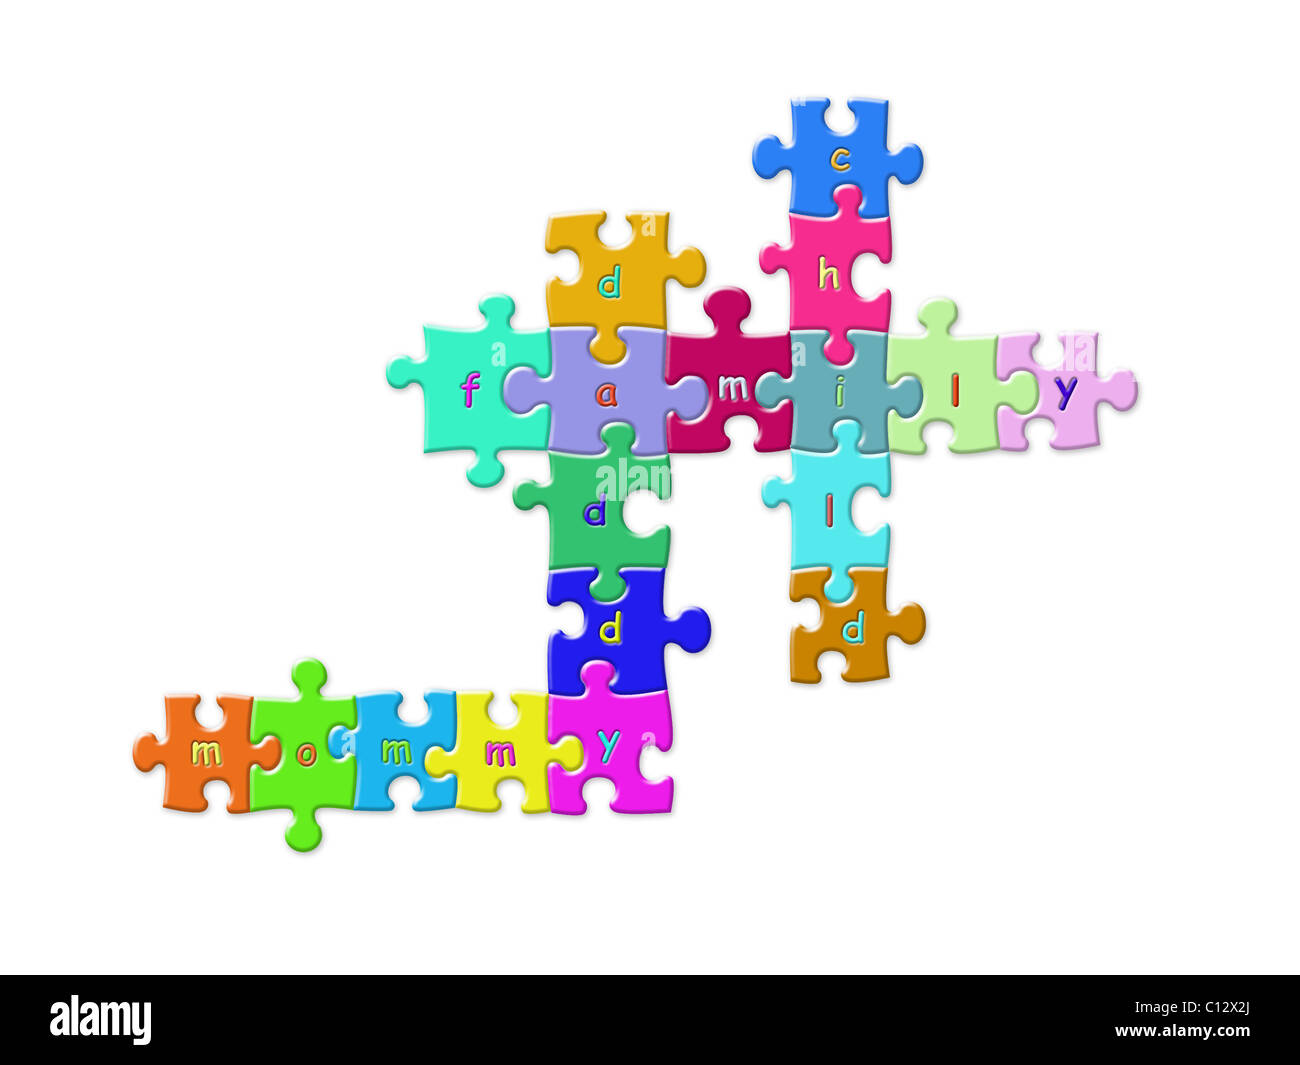 Colorful puzzle pieces put together to form crosswords of mommy, daddy, family and child words - Stock Image